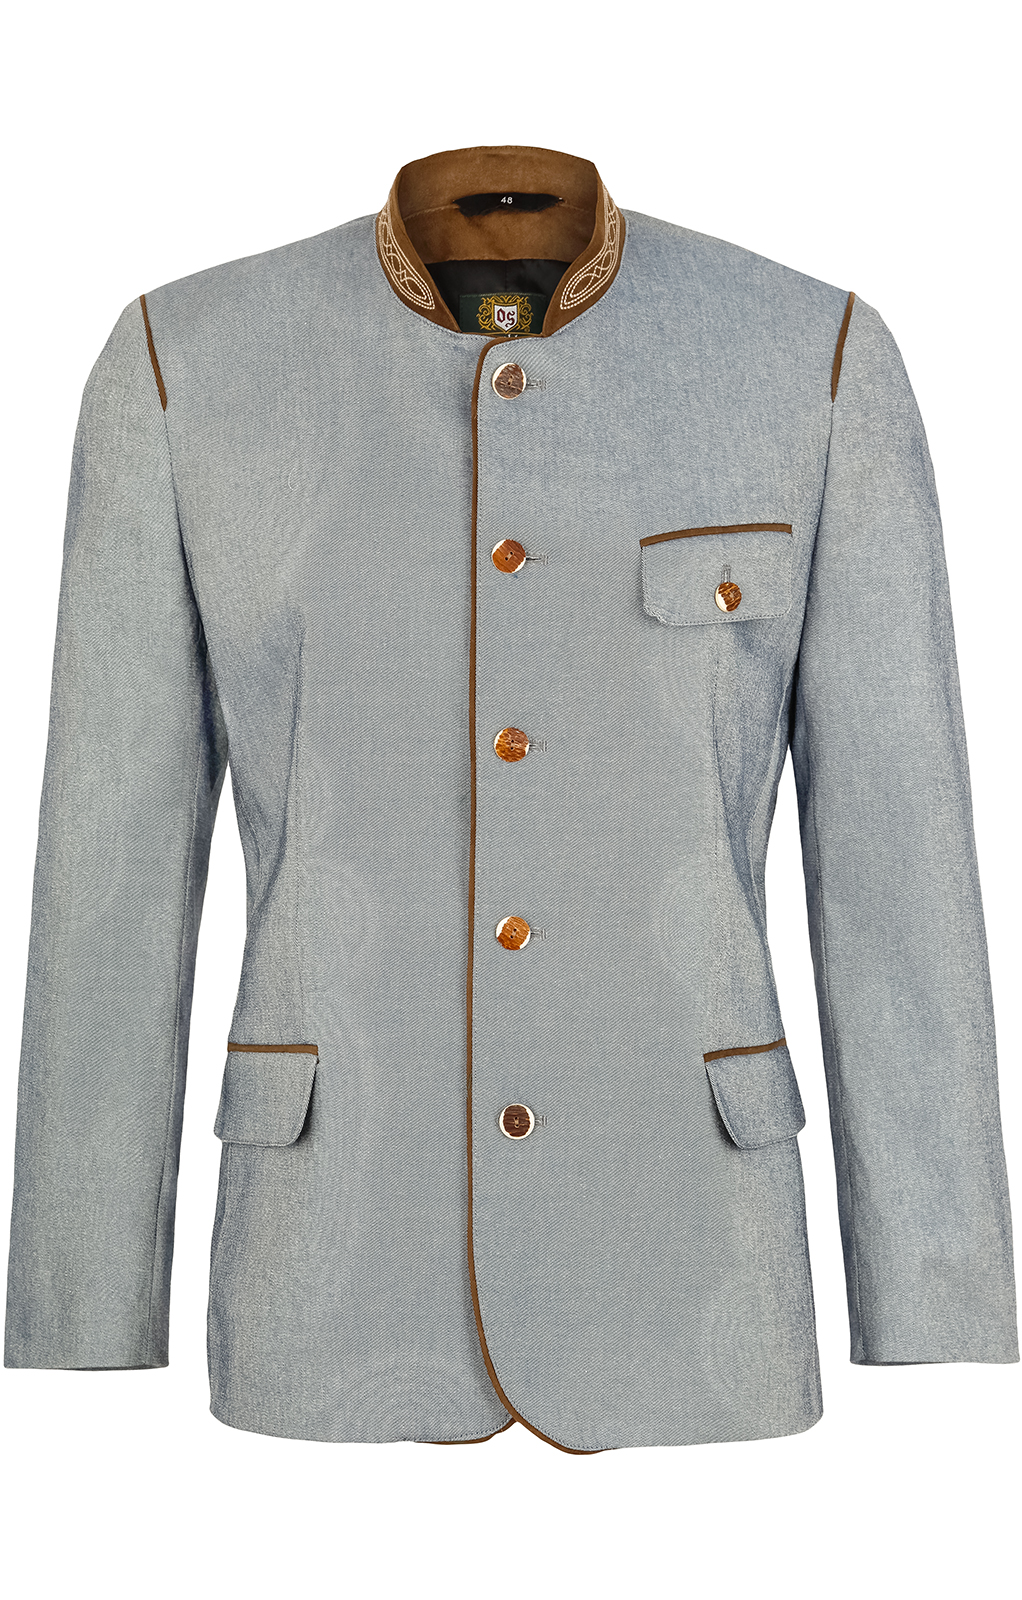 weitere Bilder von German traditional jacket blue